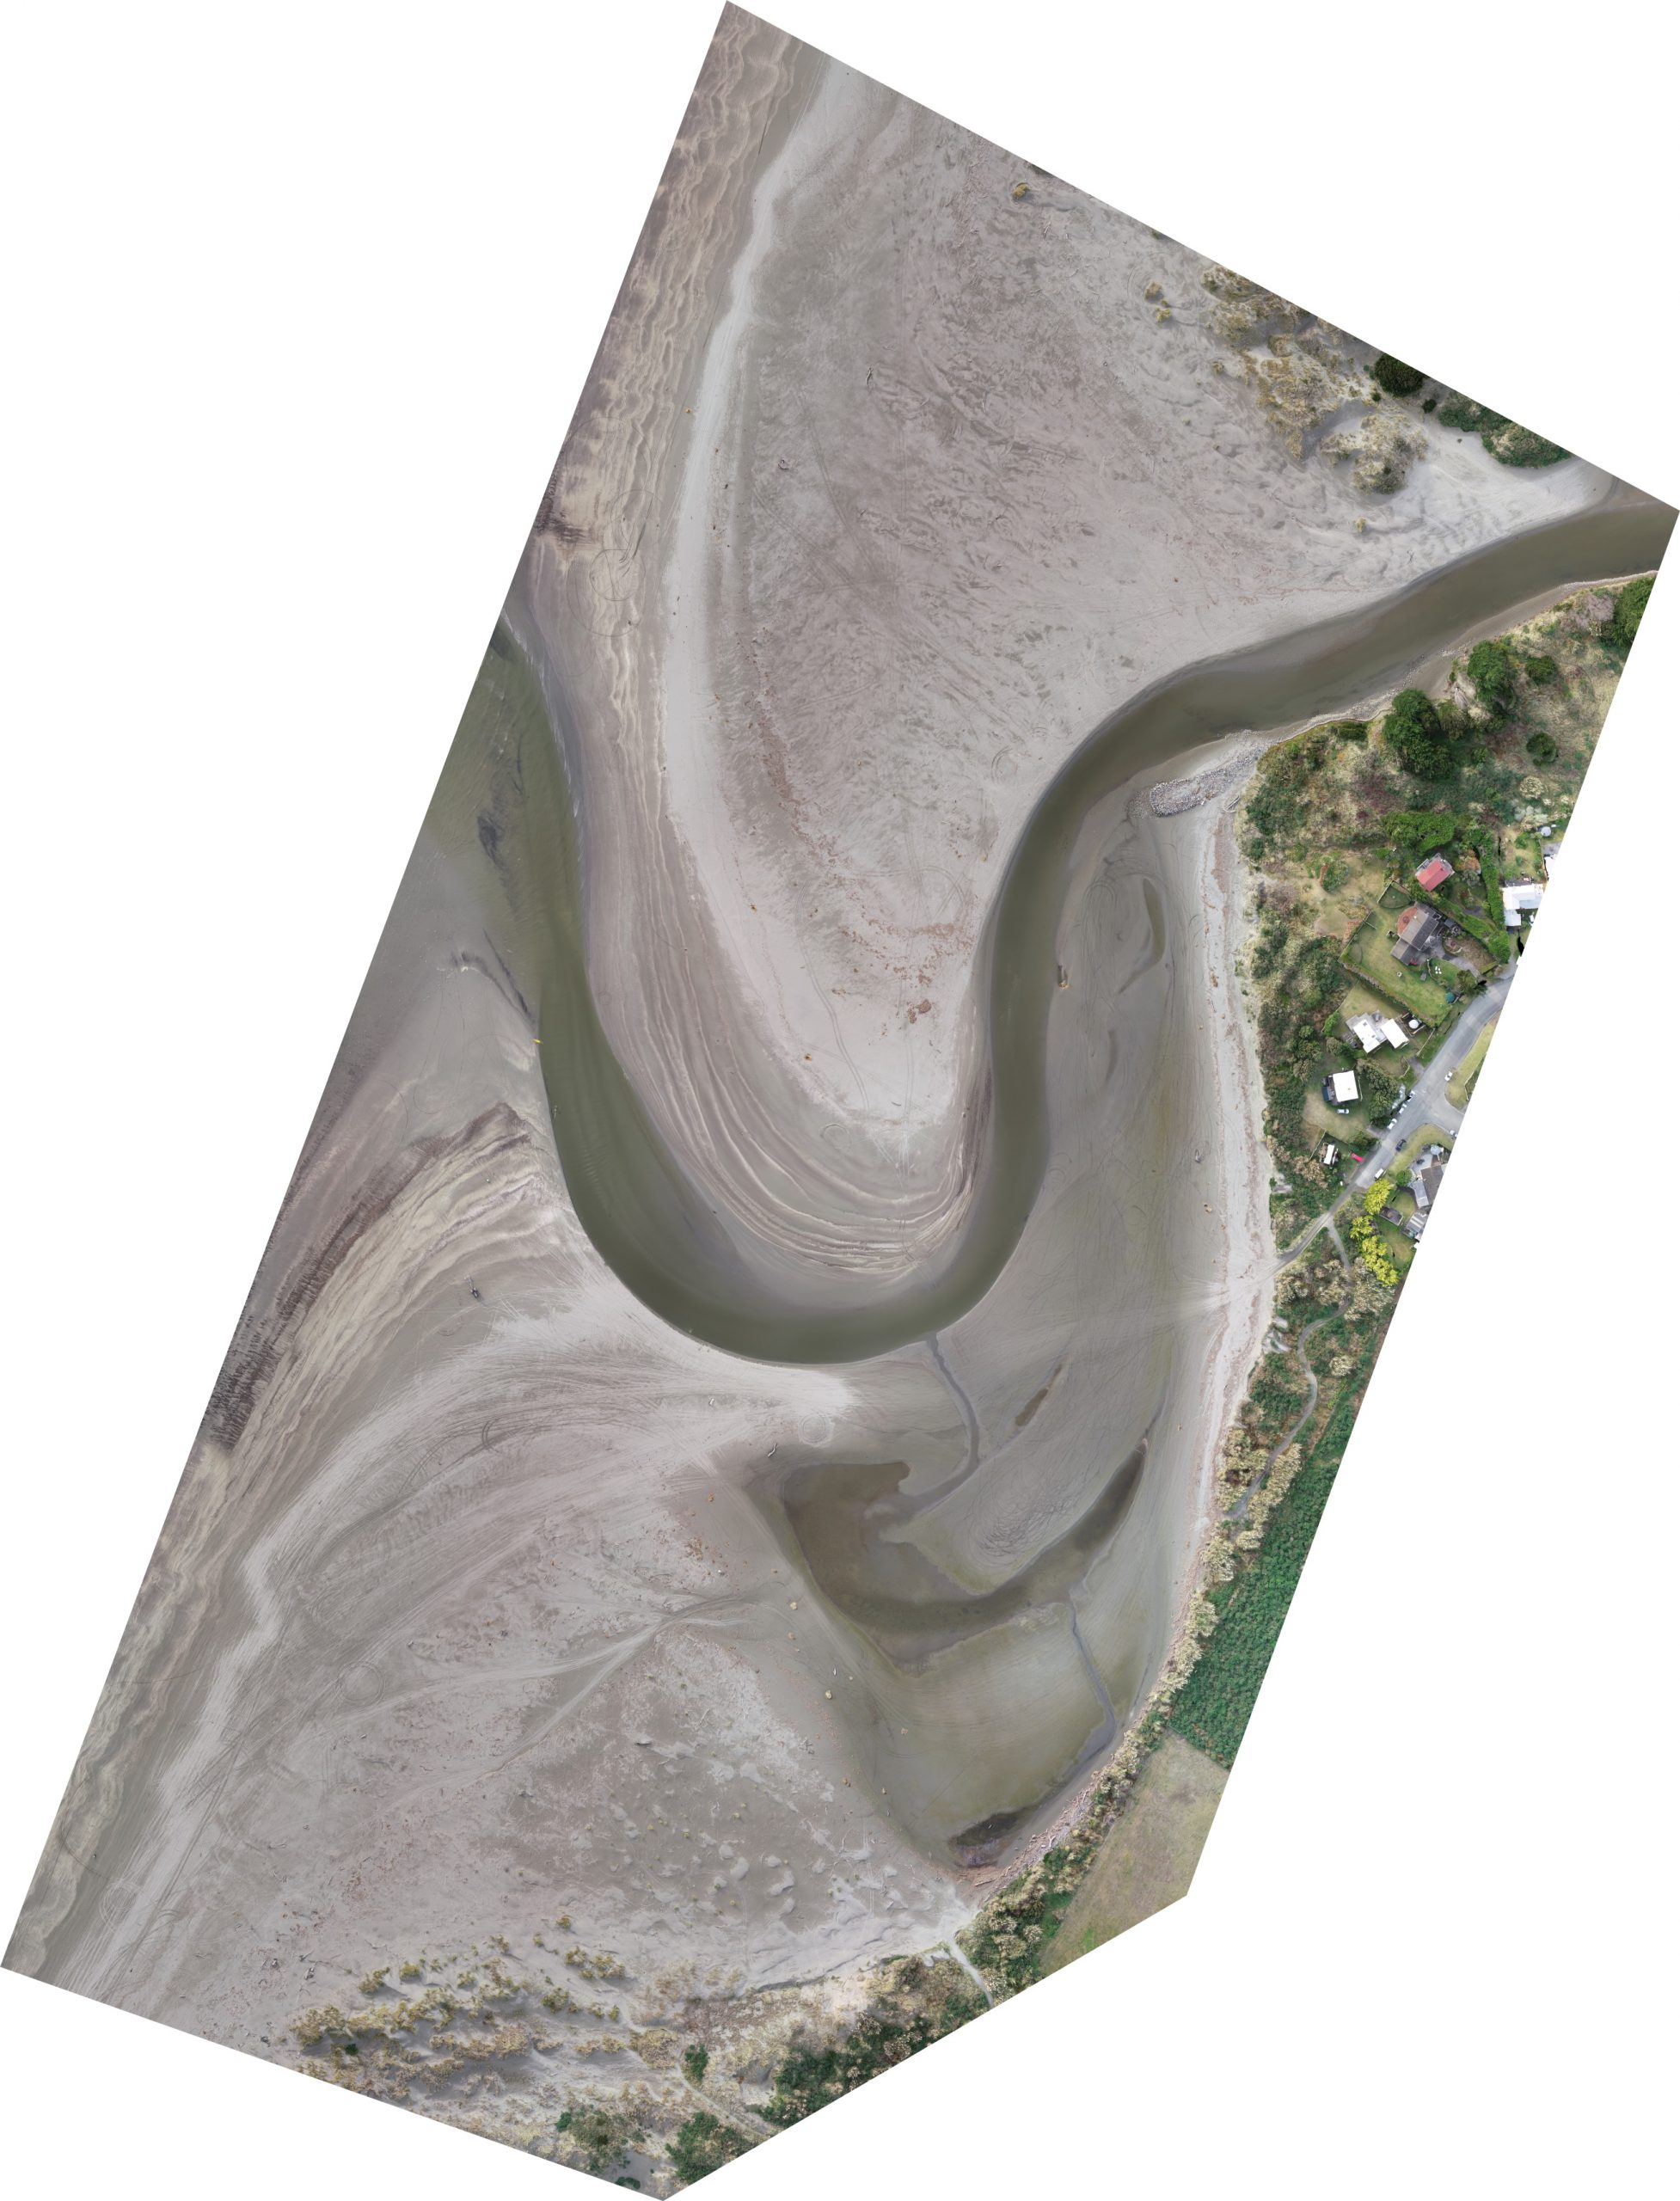 River mouth drone photo 31 May 2020.